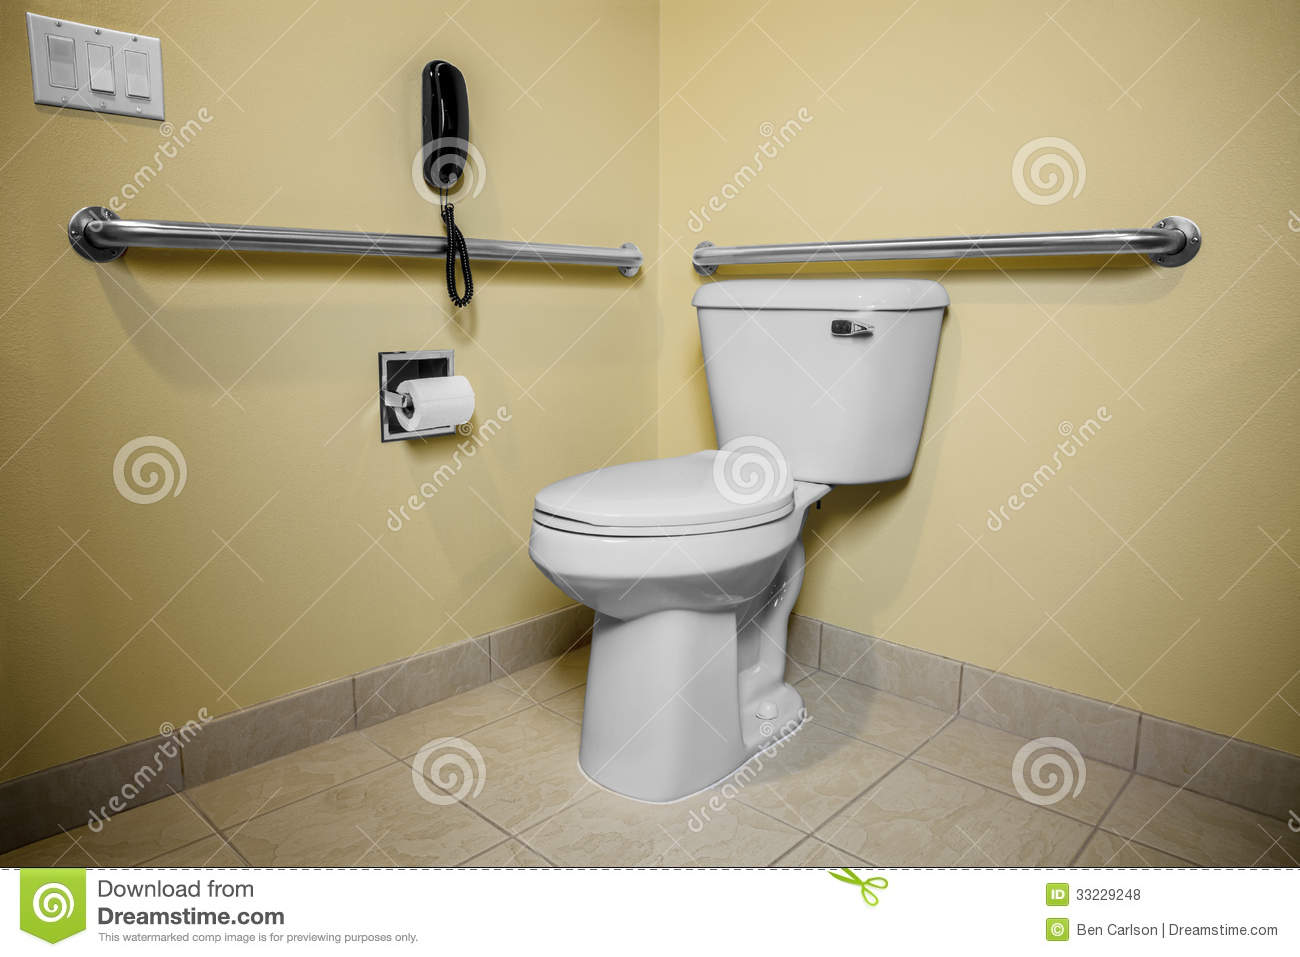 Handicap Toilet Phone stock photo. Image of handicap - 33229248